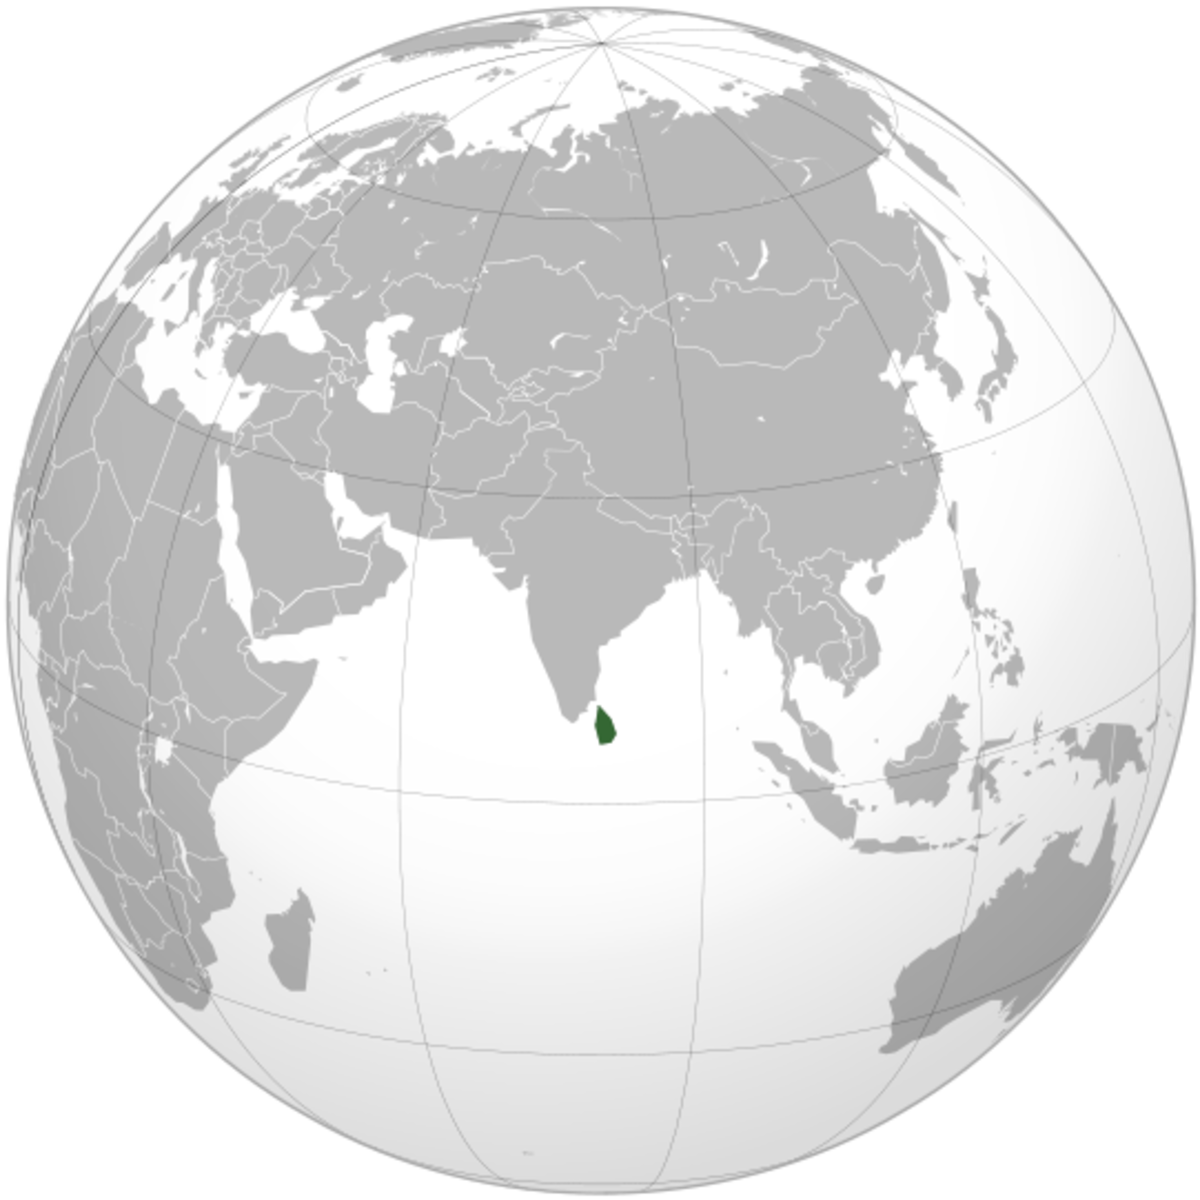 Permission is granted to copy, distribute and/or modify this document under the terms of the GNU Free Documentation License. see: http://en.wikipedia.org/wiki/File:Sri_Lanka_%28orthographic_projection%29.svg